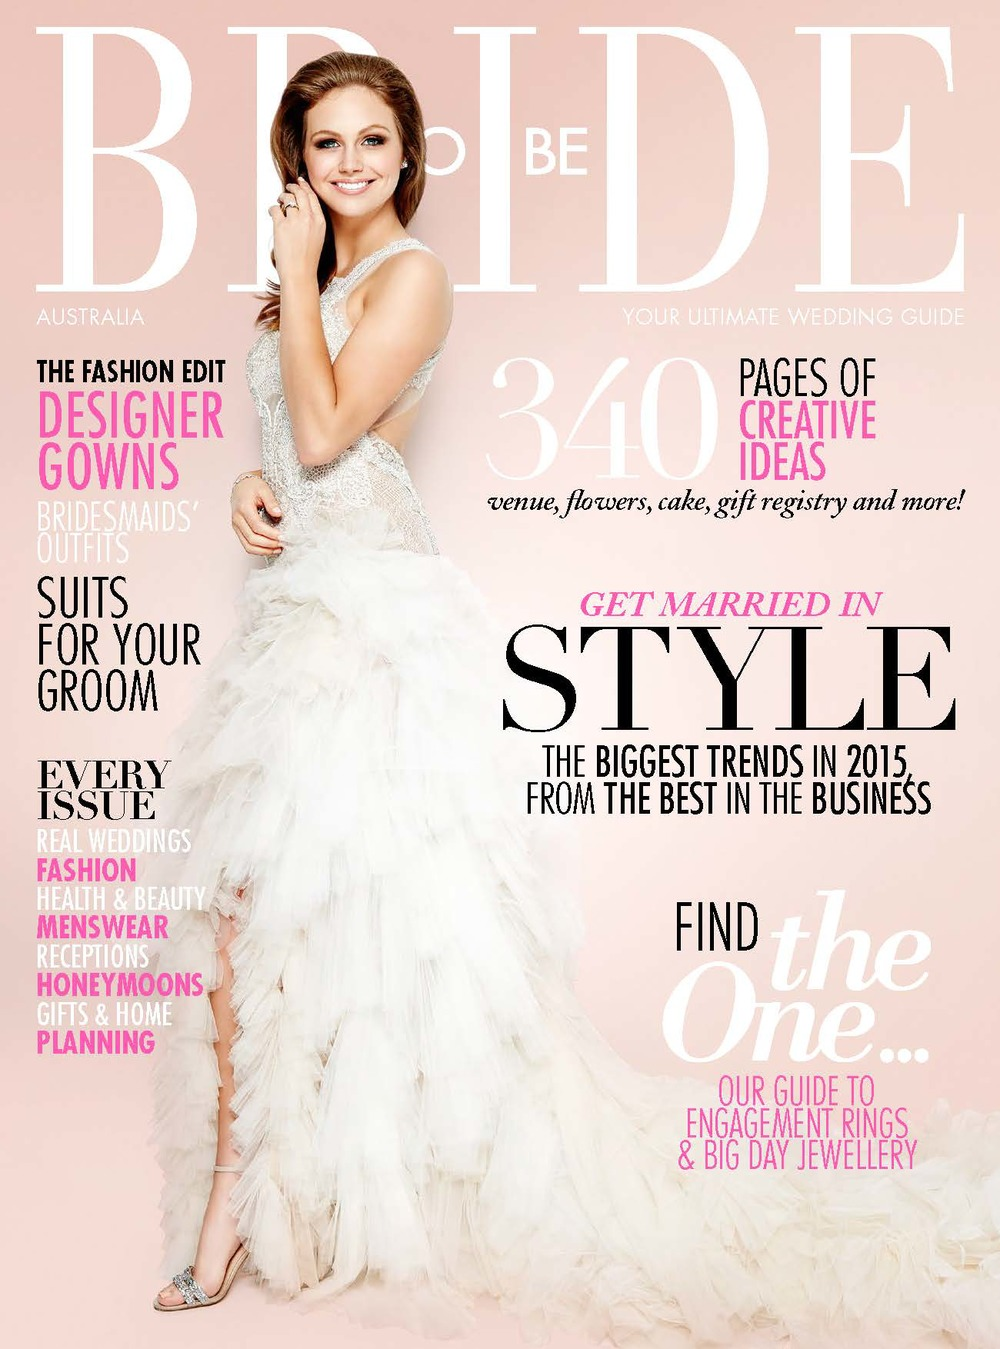 Bride to Be Magazine.jpg